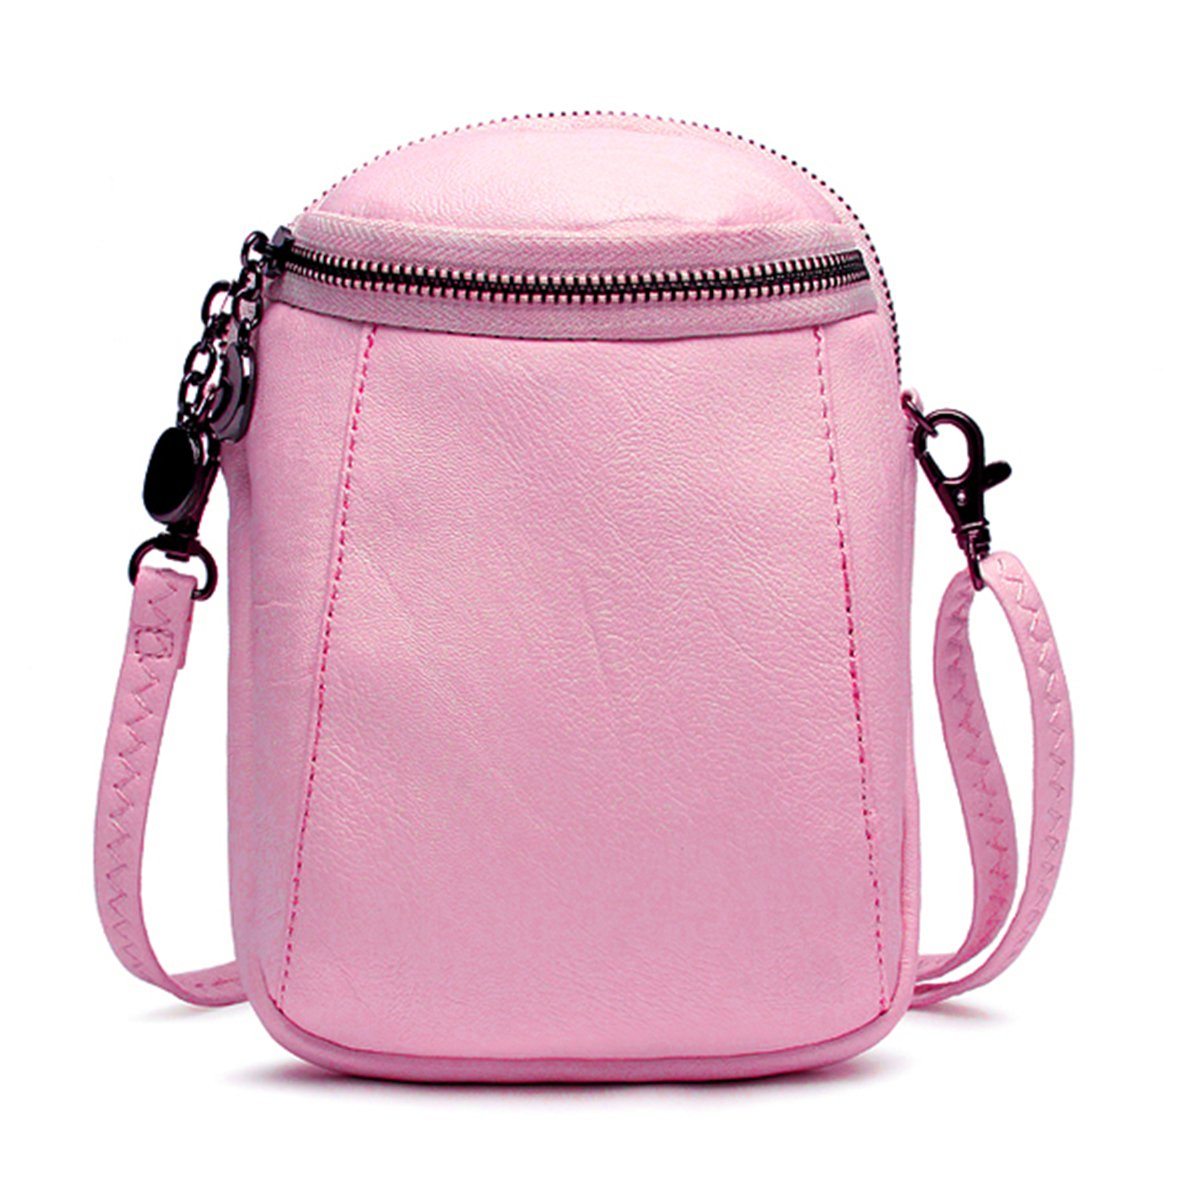 JOSEKO Crossbody Bag for Women, PU Leather Round Little Phone Bag Casual Bucket Bag Vintage Travel Bag for Women Girls Ladies Pink 5.12 inch(L) x 2.36 inch(W) x 7.48 inch(H)